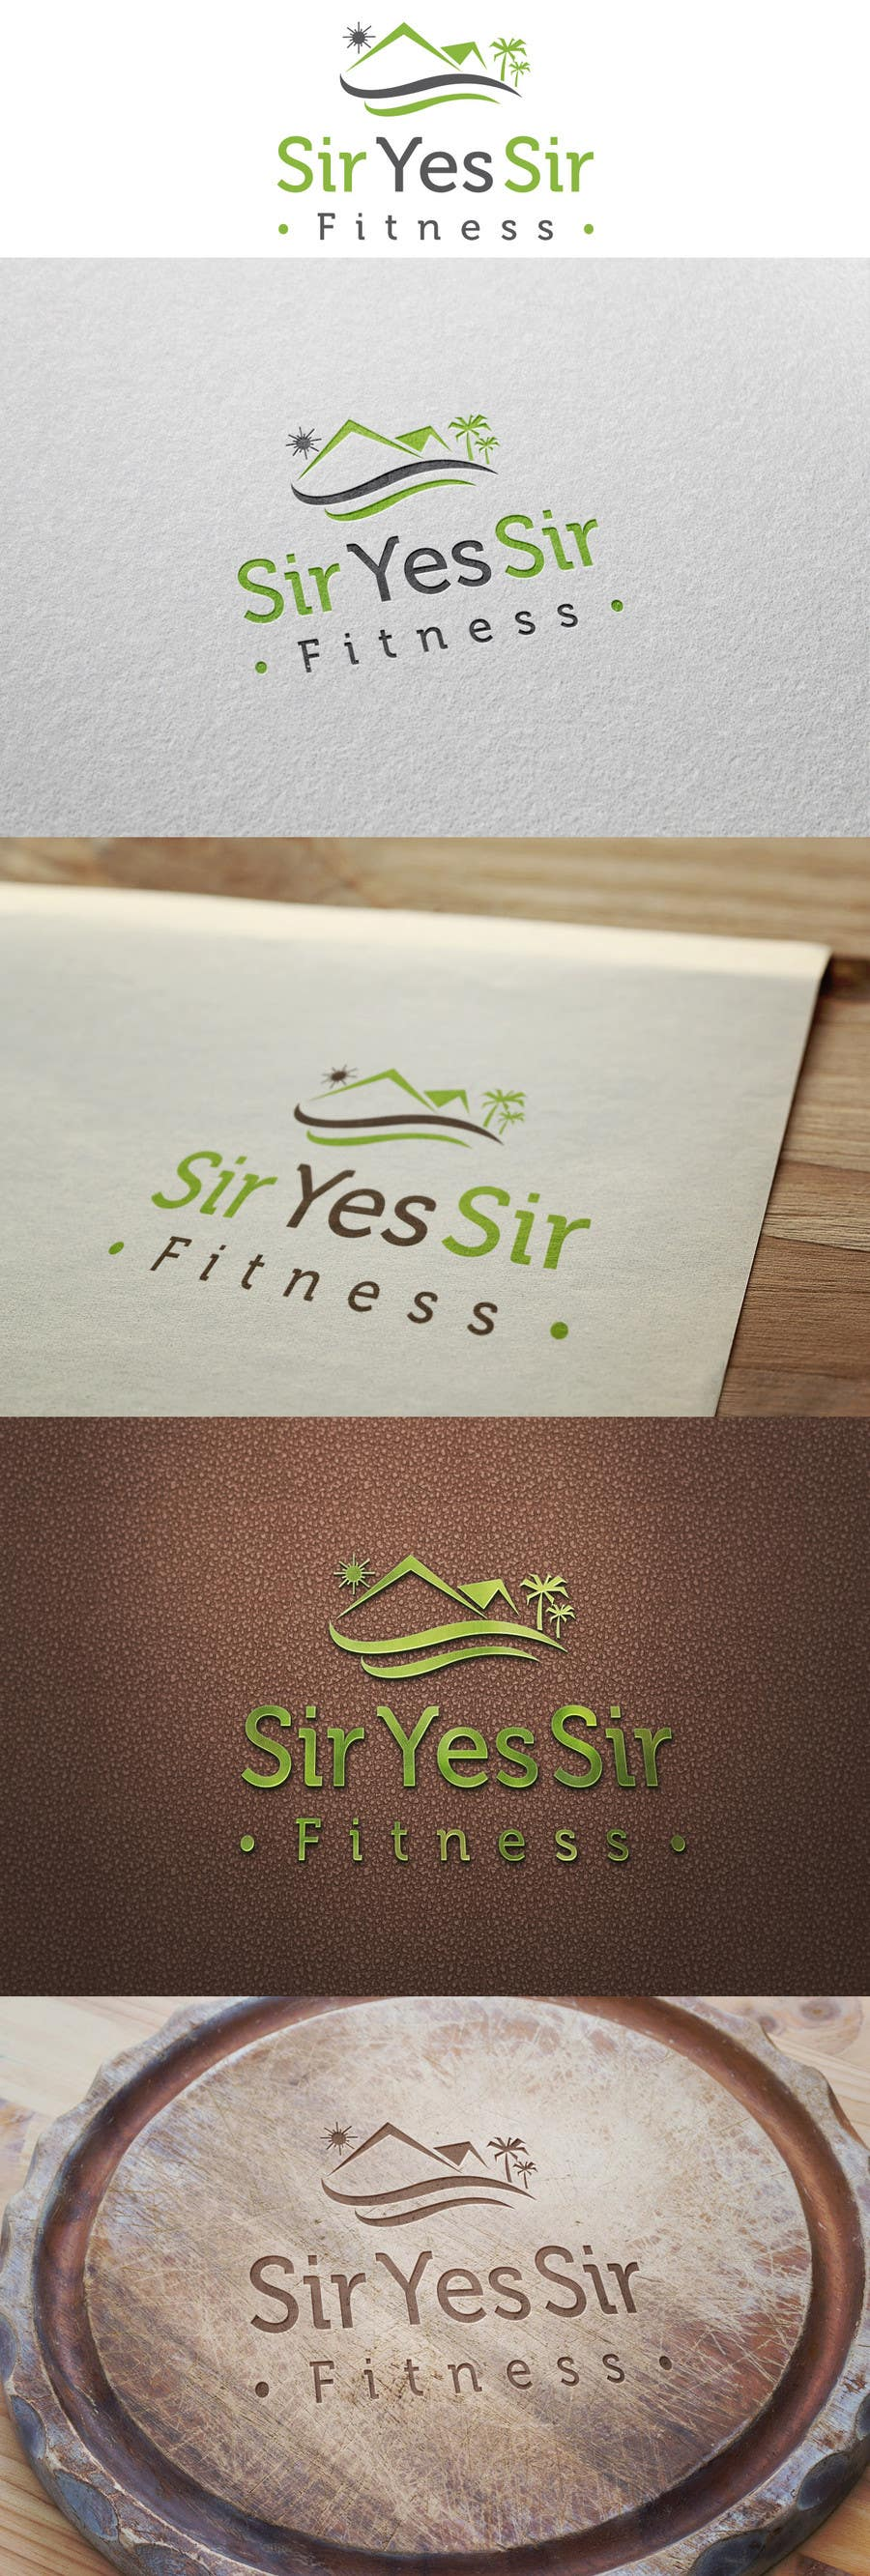 Contest Entry #233 for Logo Design for Fitness Business